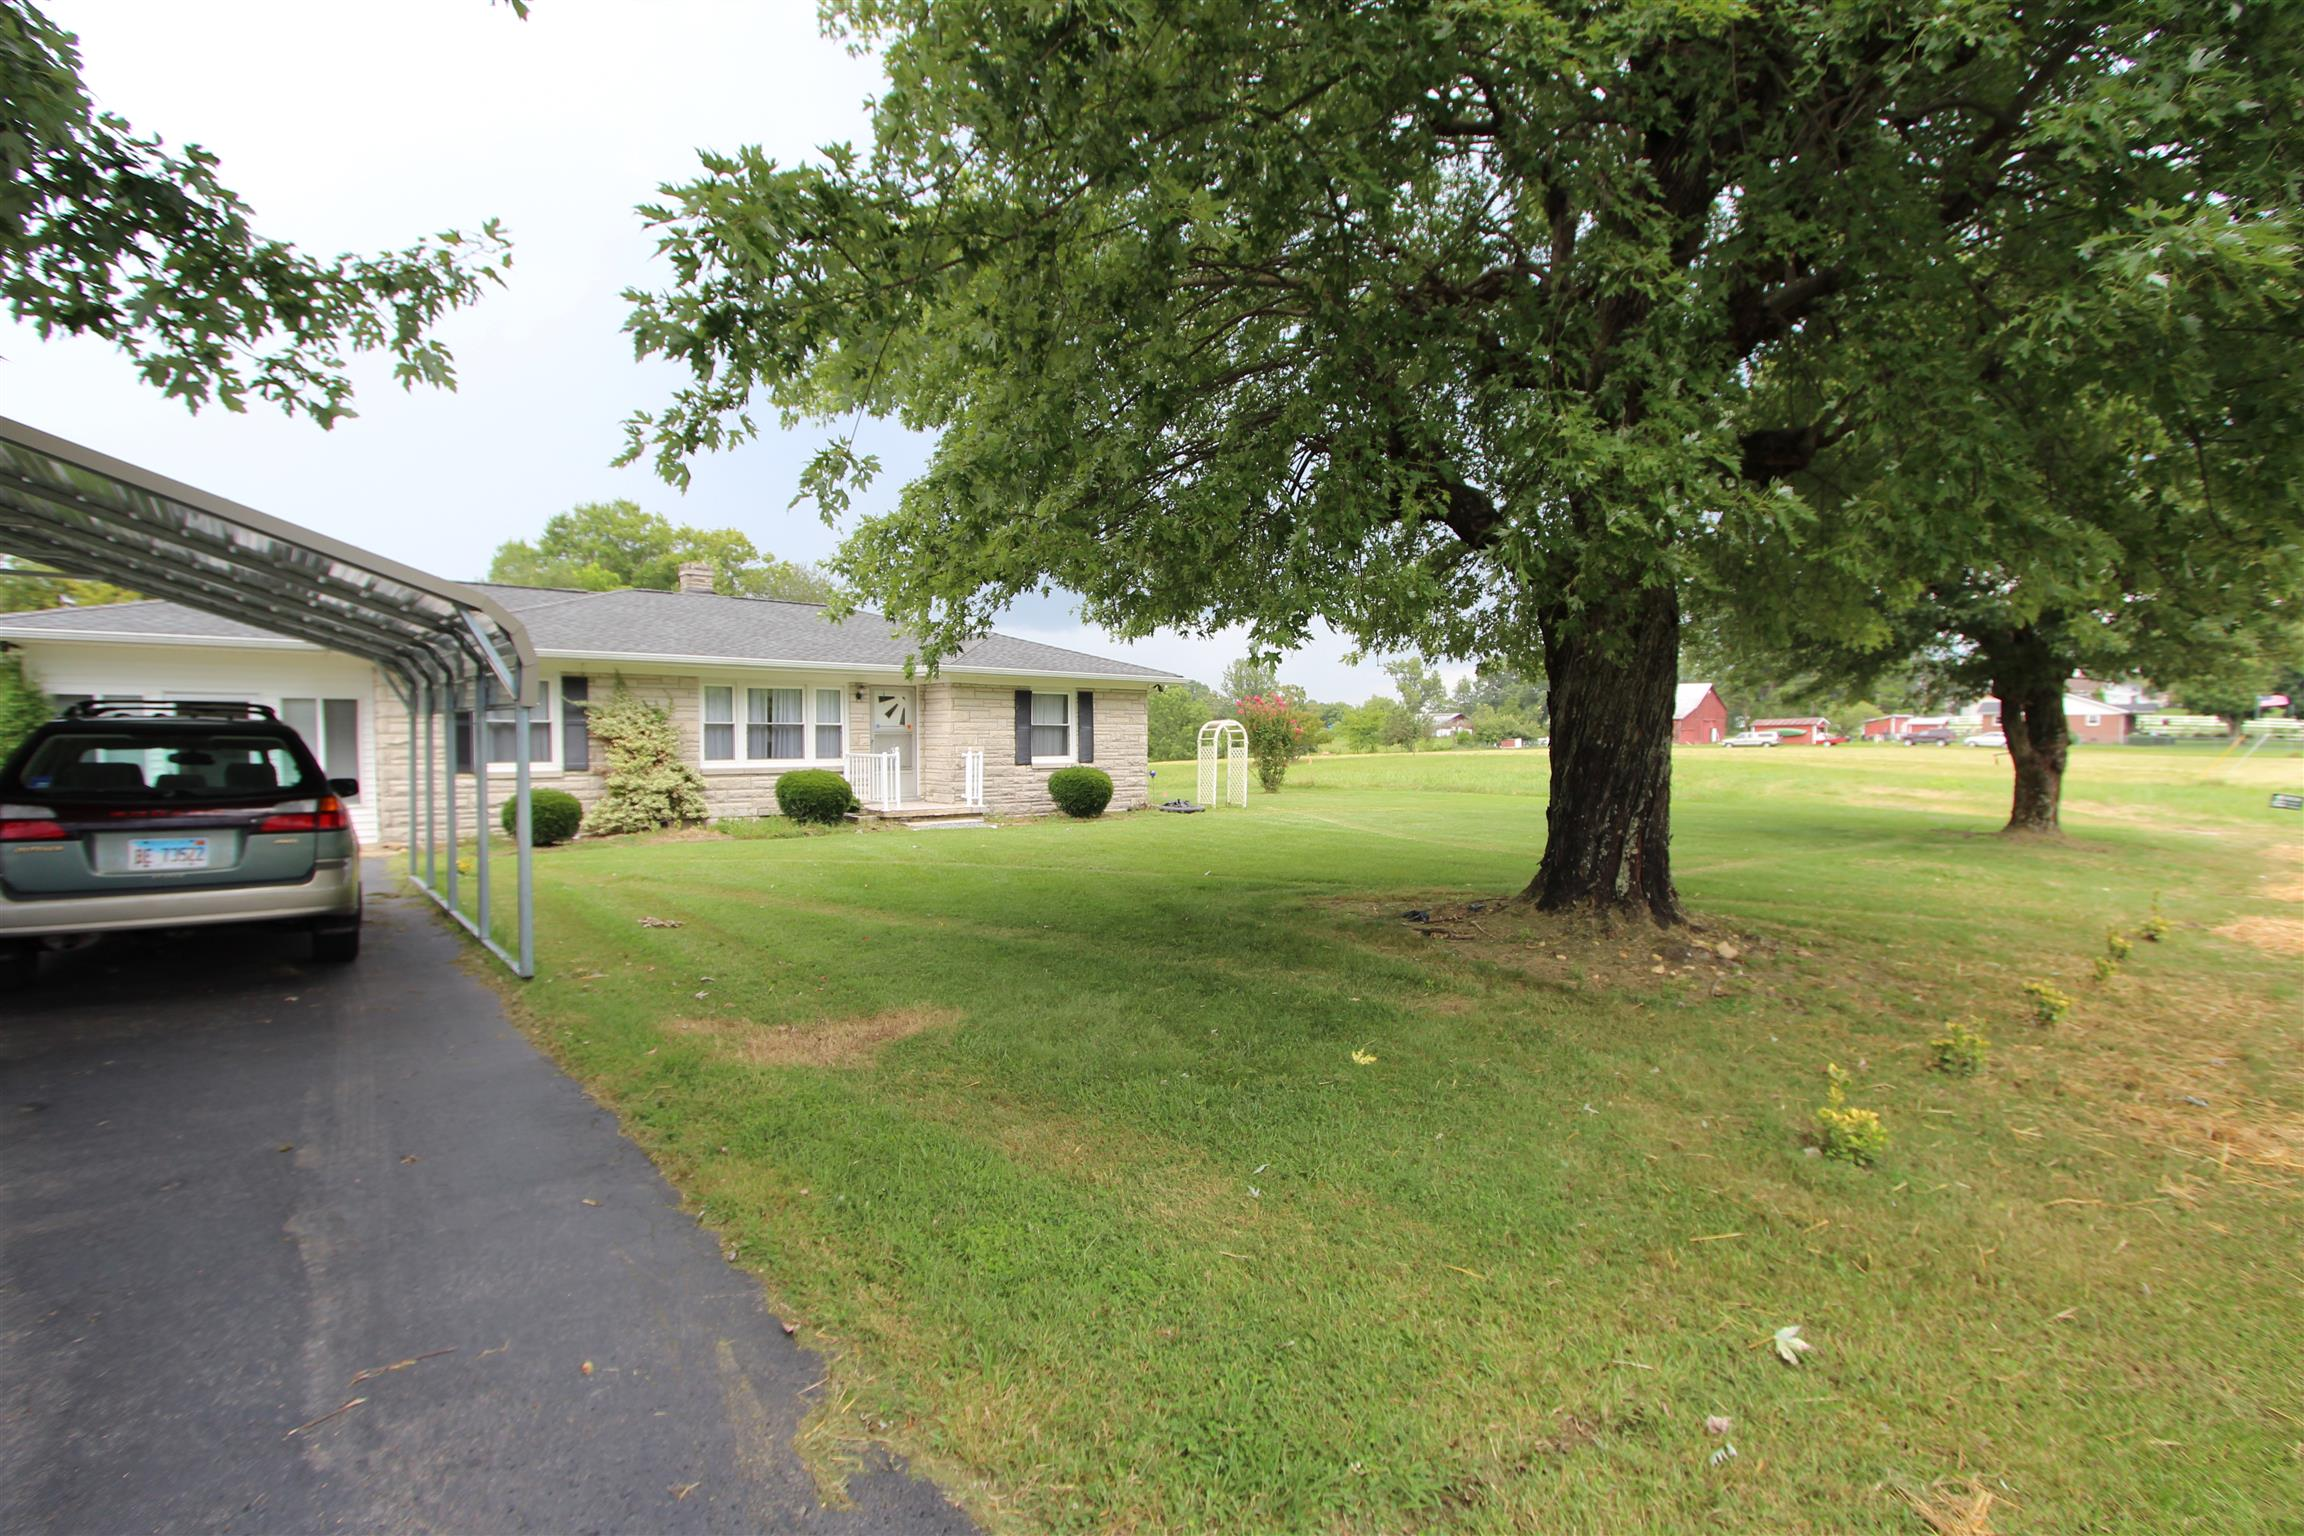 249 Carthage Rd, Red Boiling Springs, TN 37150 - Red Boiling Springs, TN real estate listing